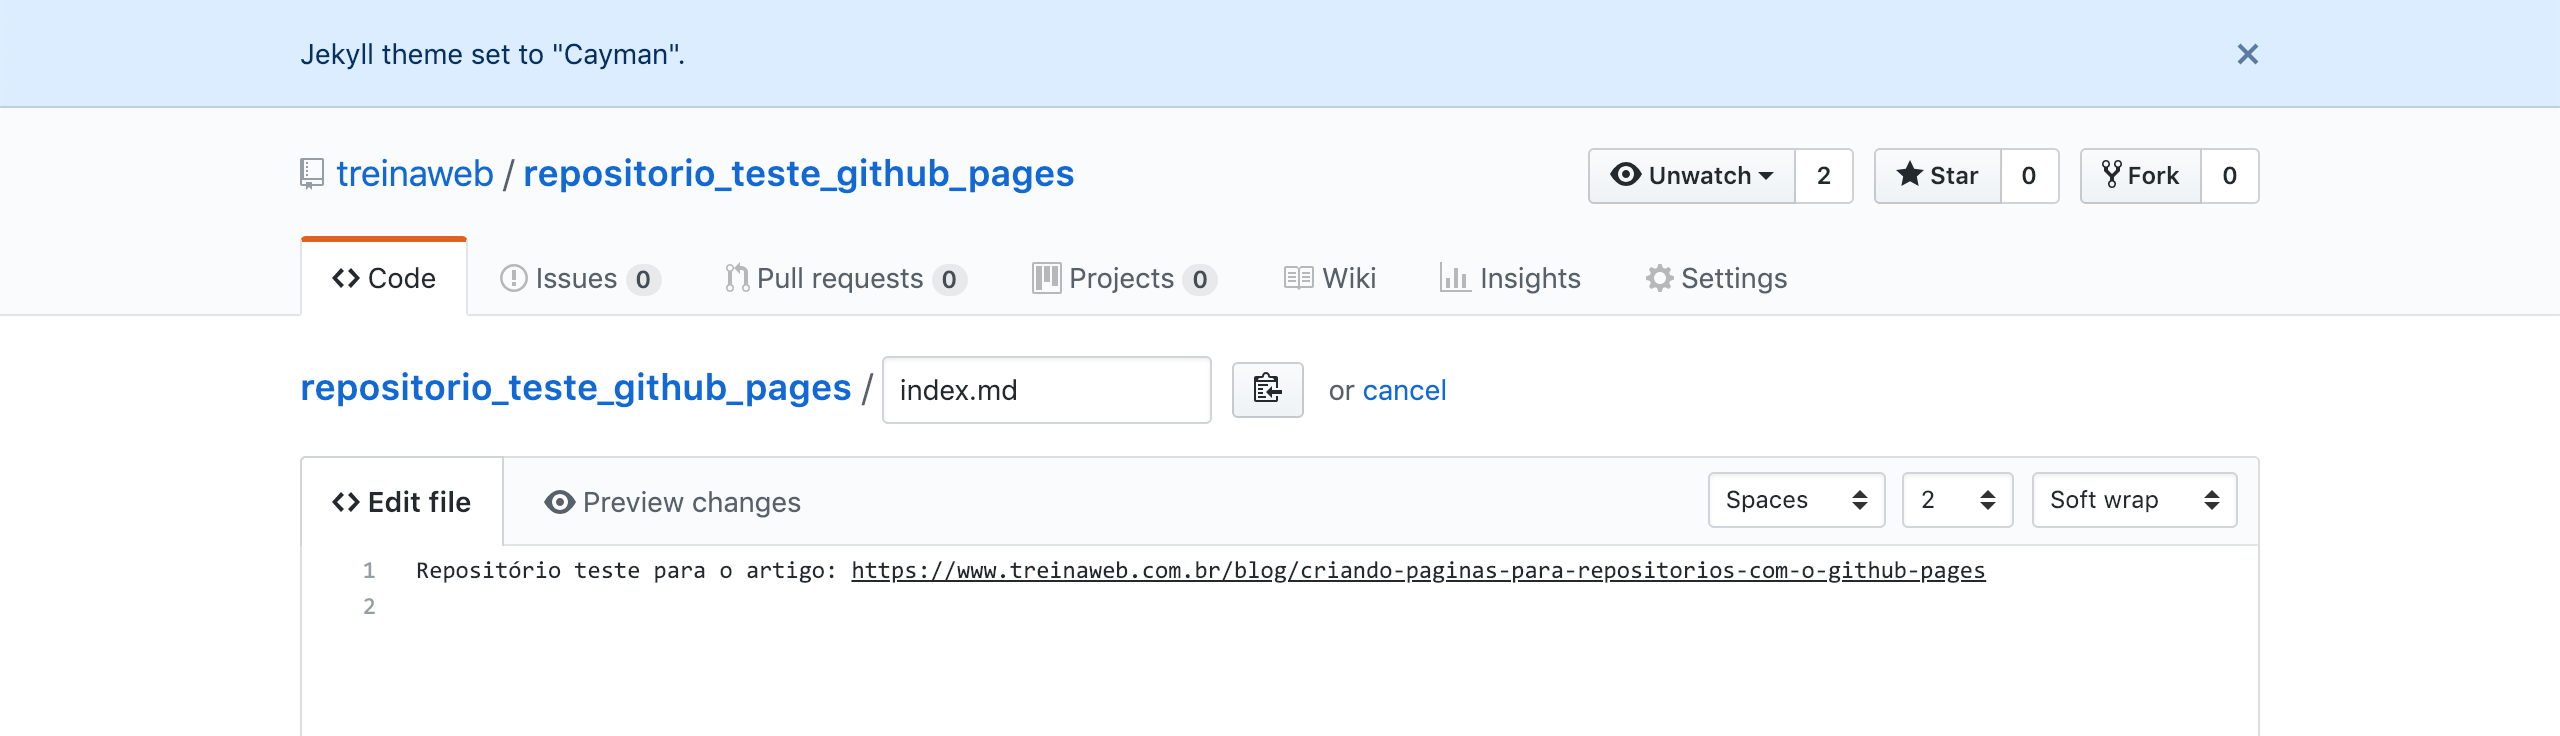 Repositório Github pages index